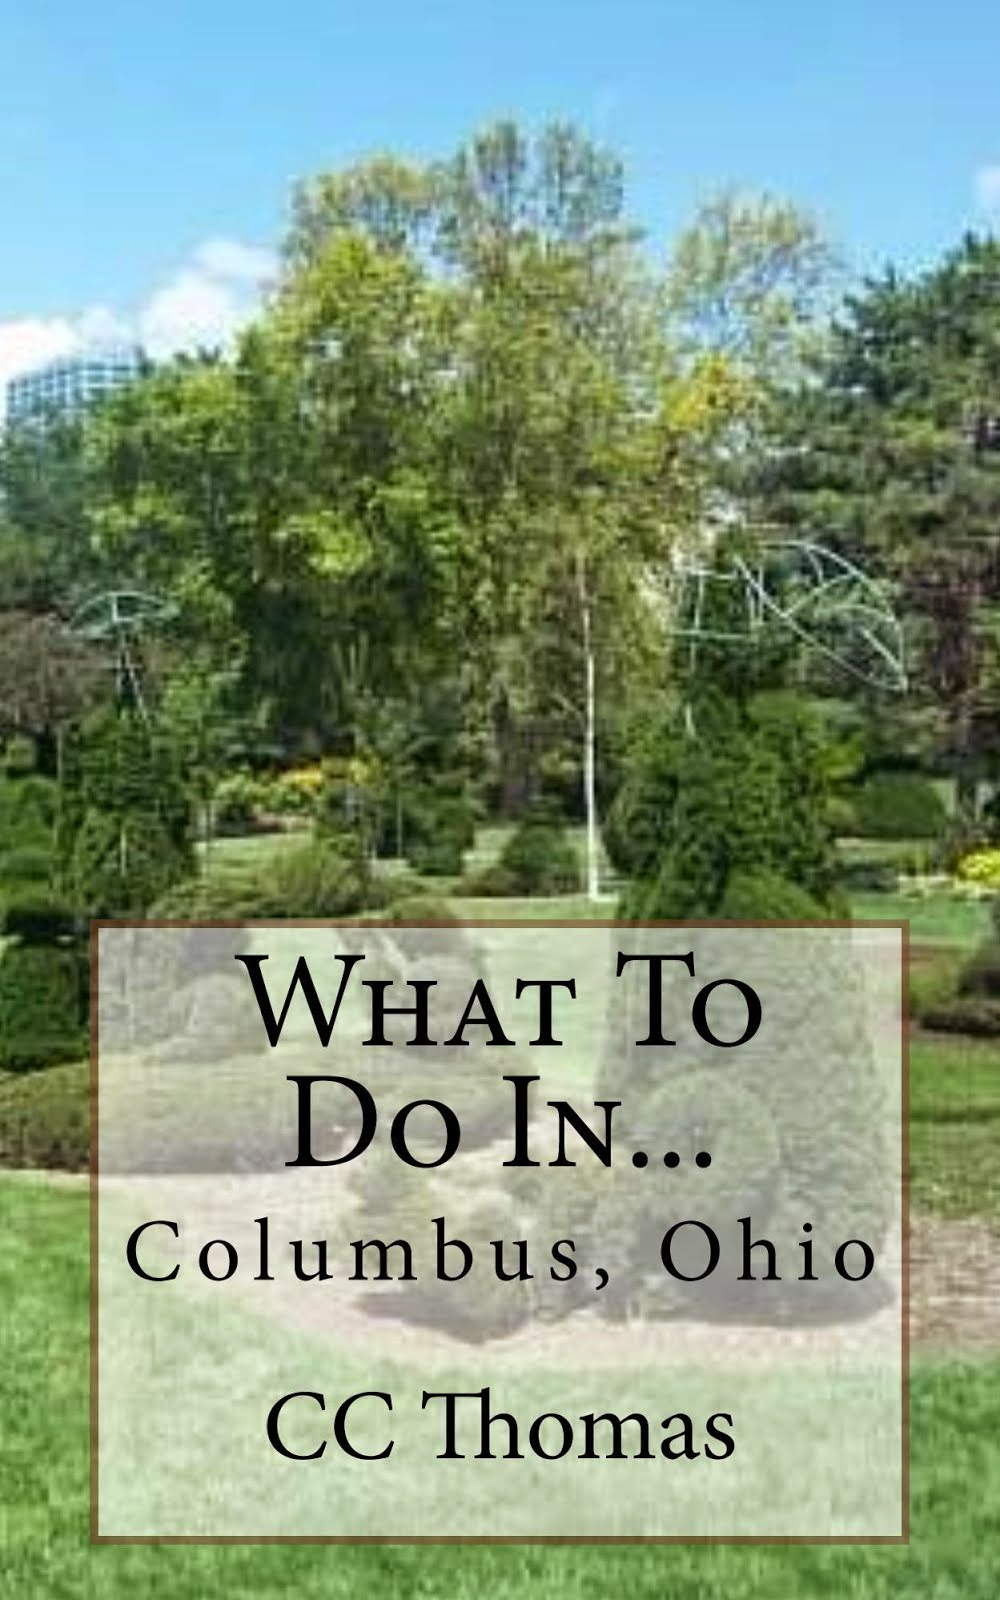 What To Do In...Columbus, Ohio